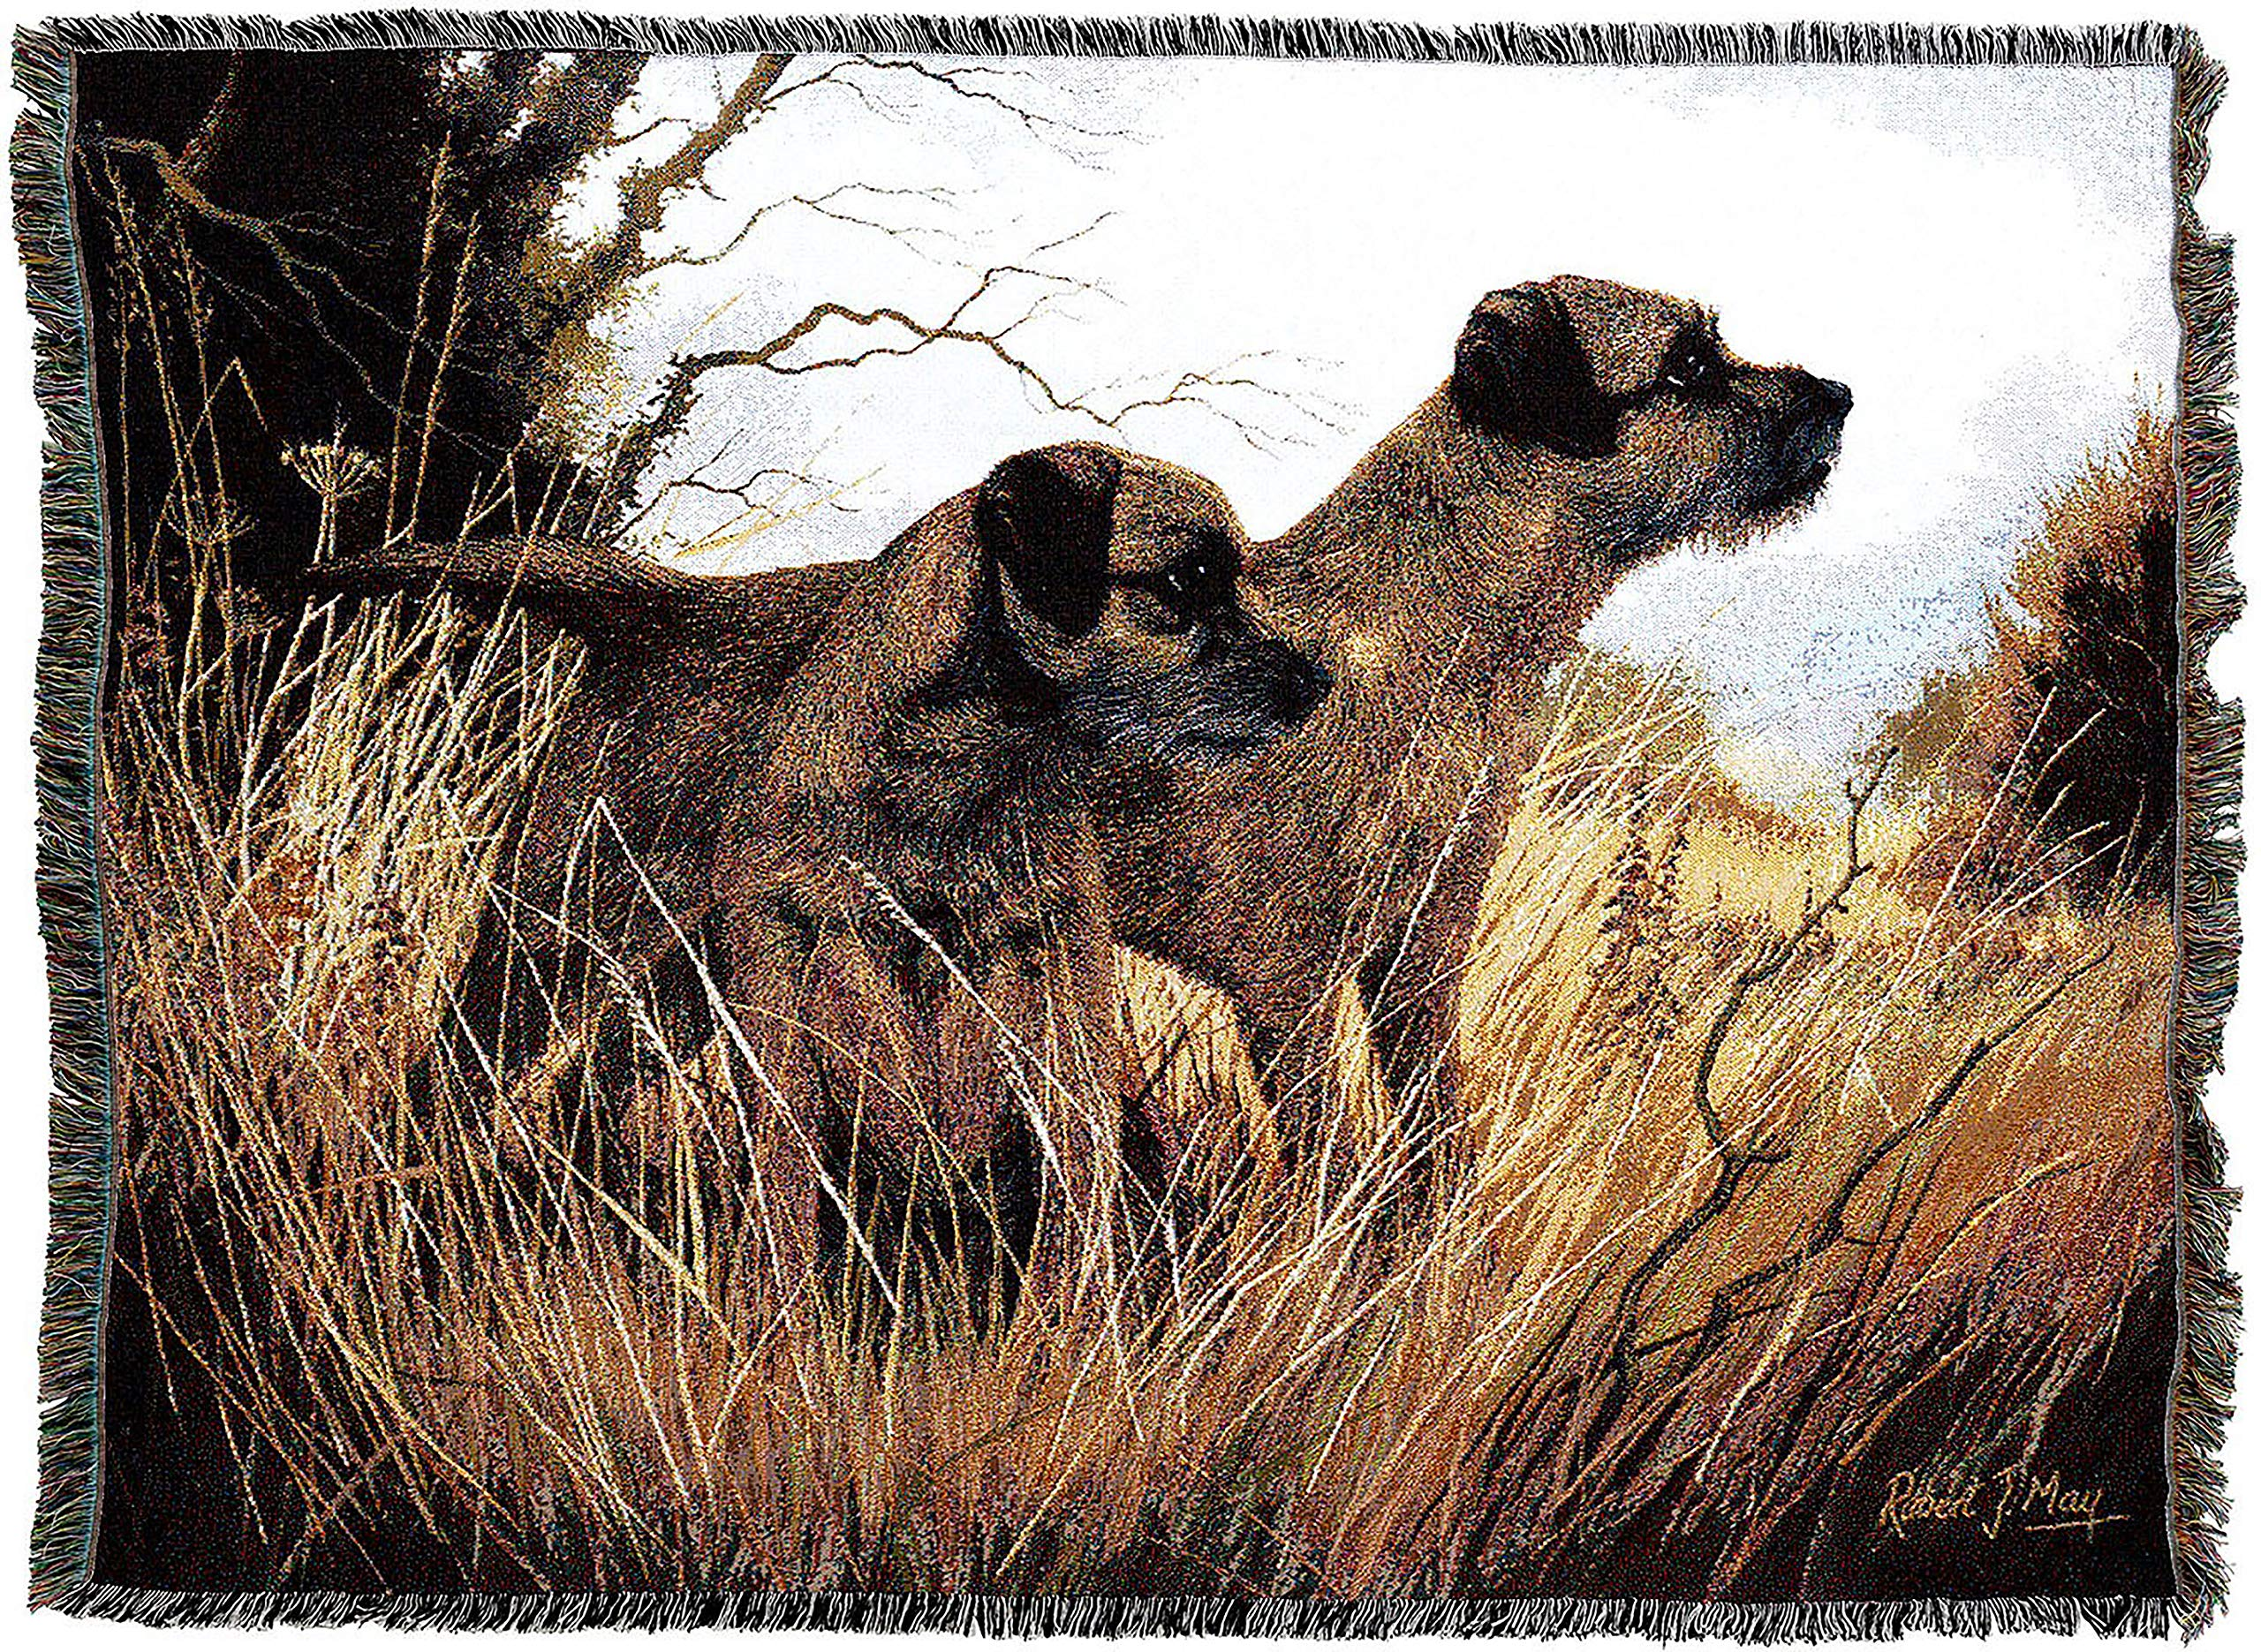 Pure Country Weavers - Border Terrier Woven Tapestry Throw Blanket with Fringe Cotton USA Size 72 x 54